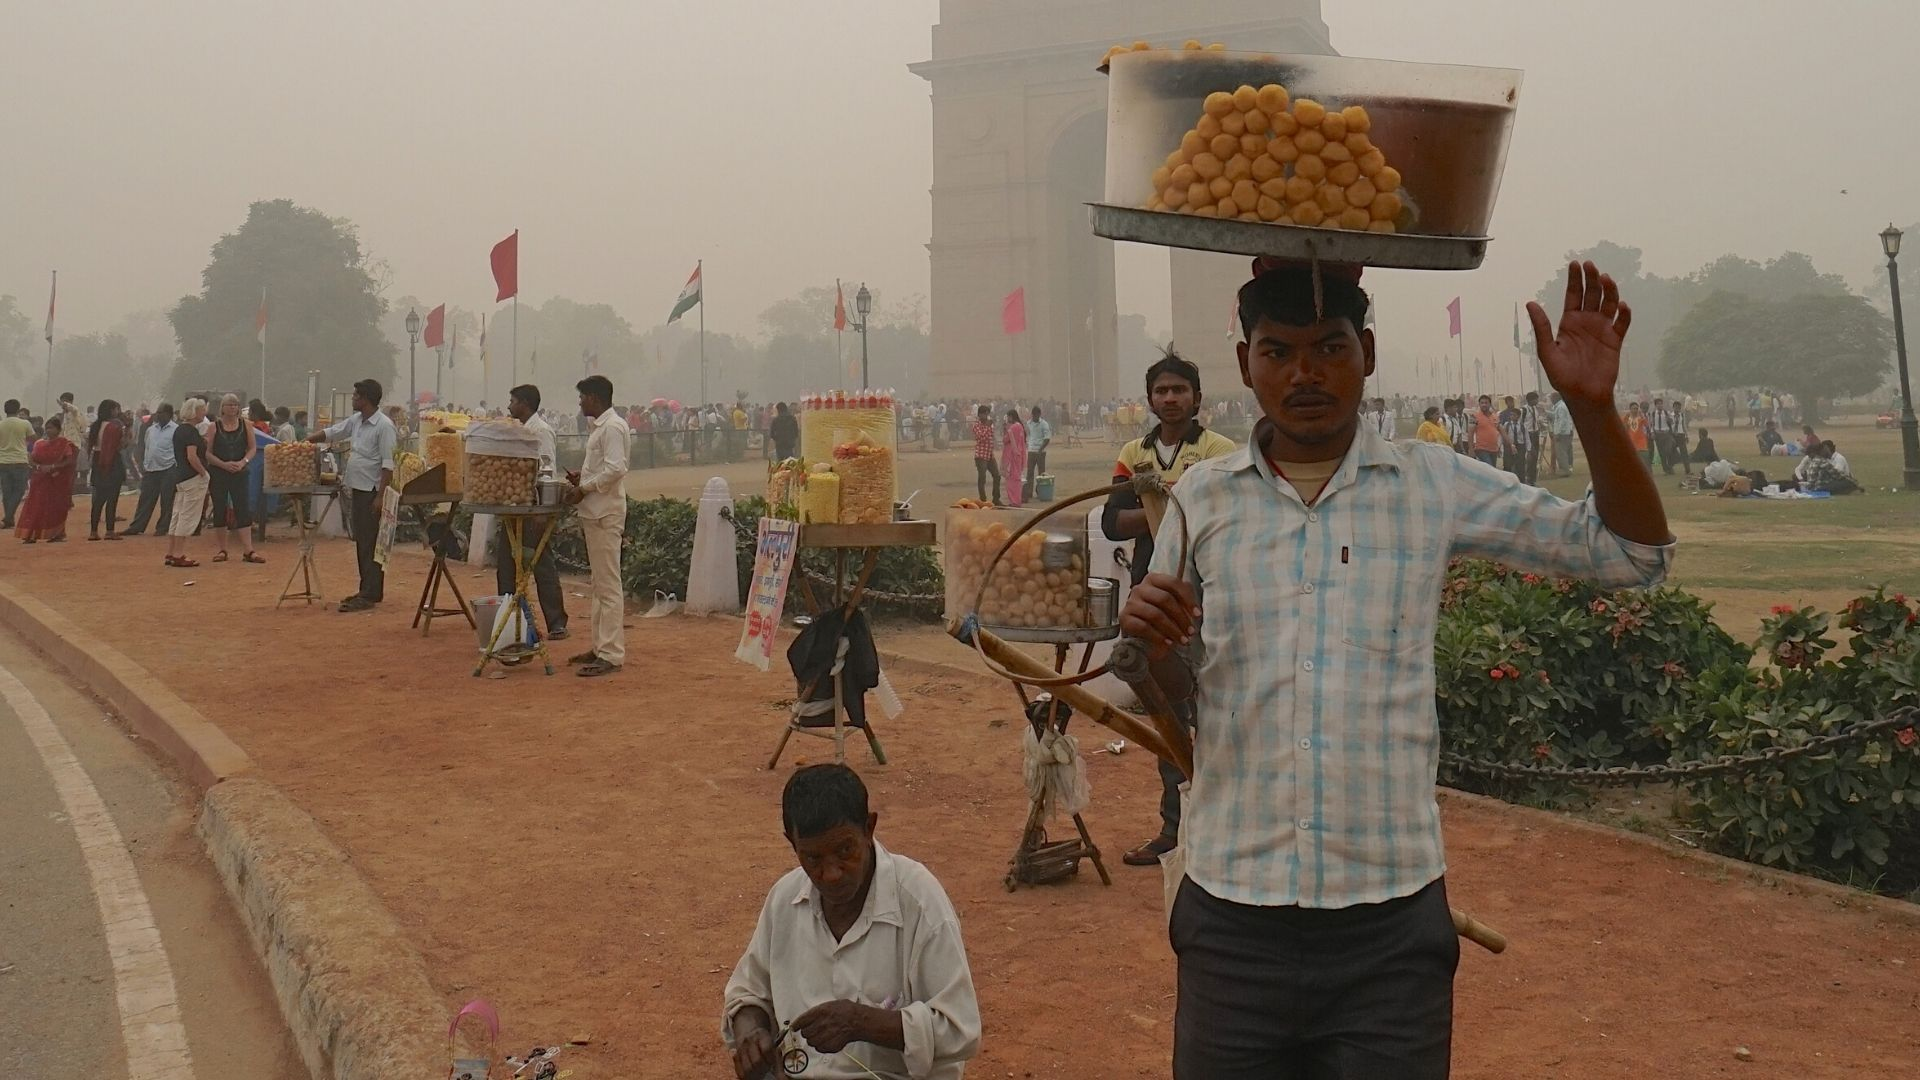 Man carrying basket on head